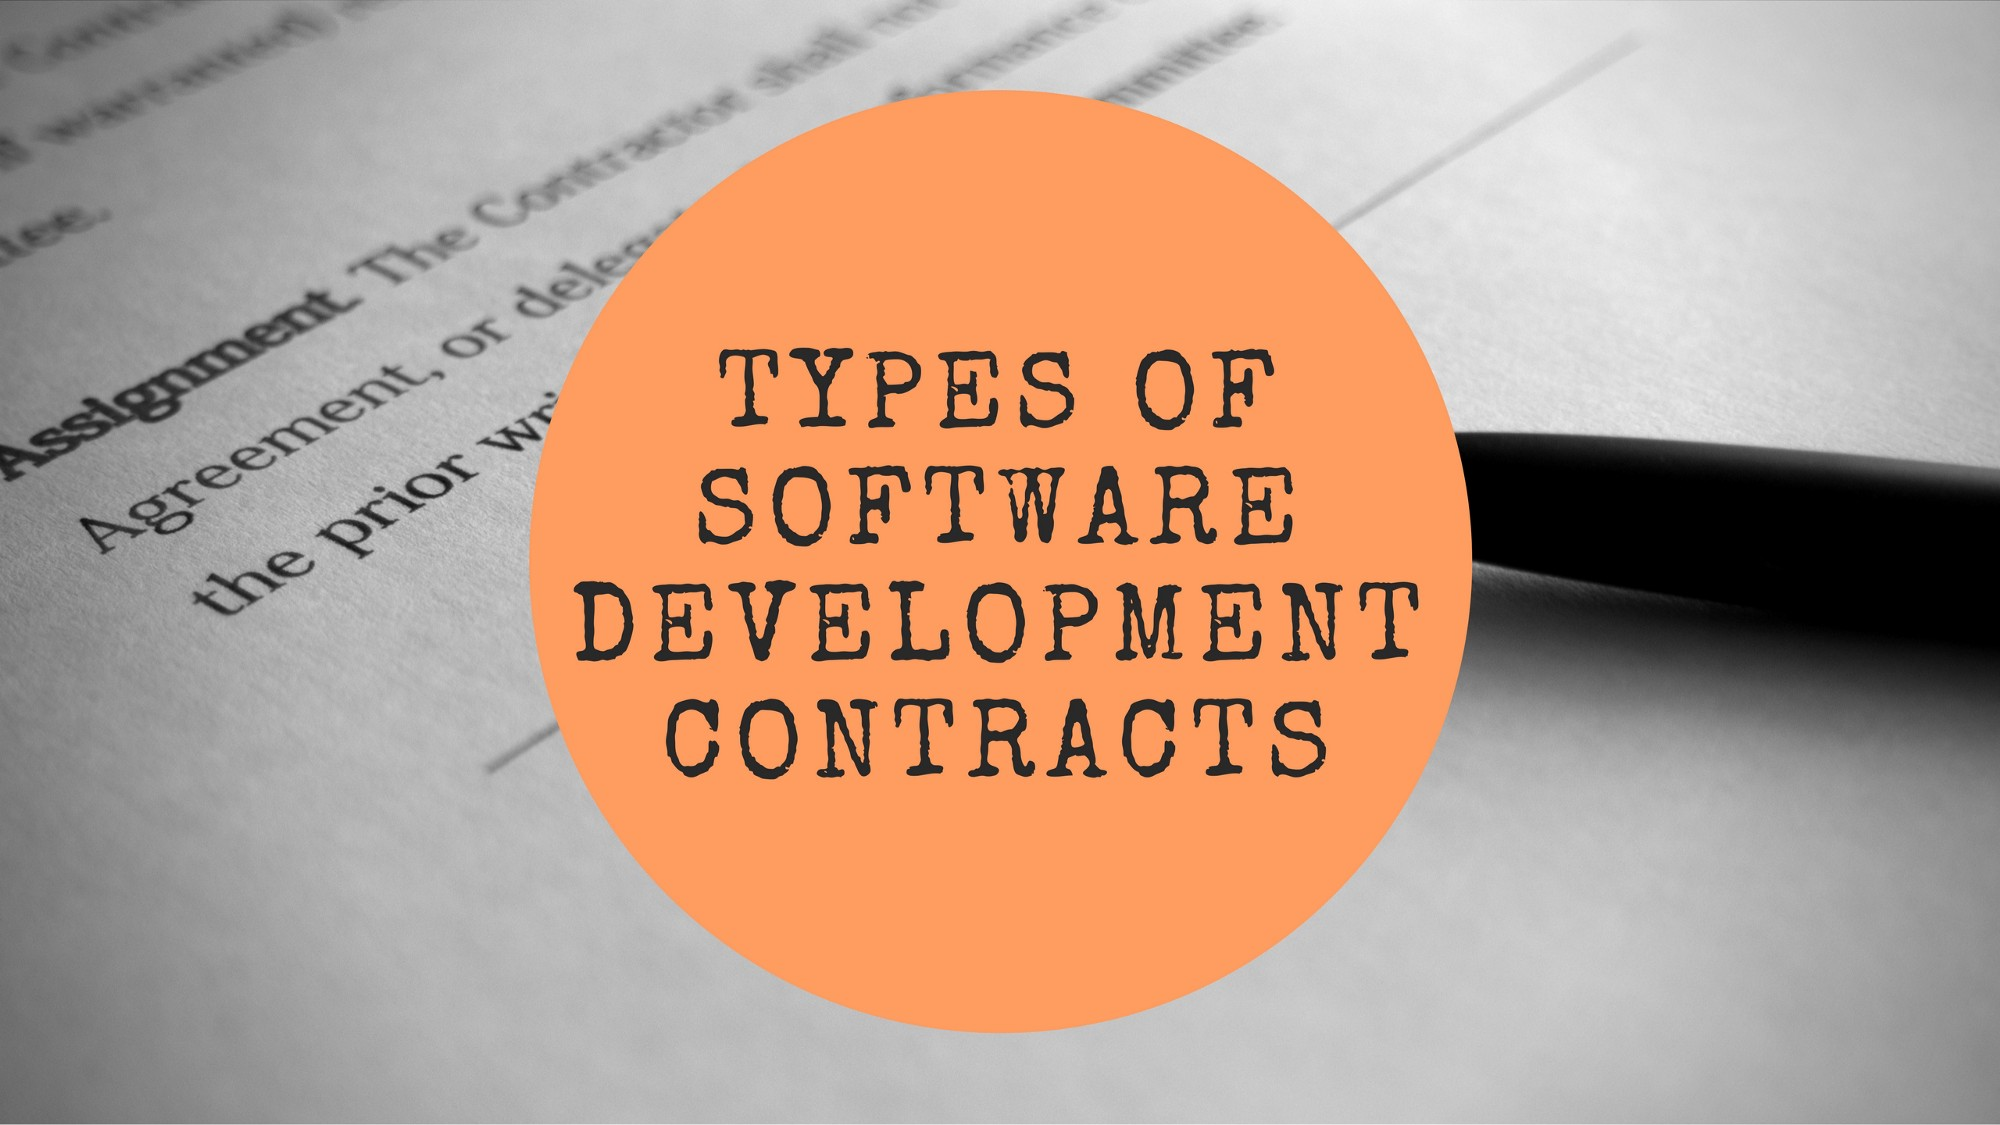 What Are The Different Types Of Software Development Contracts